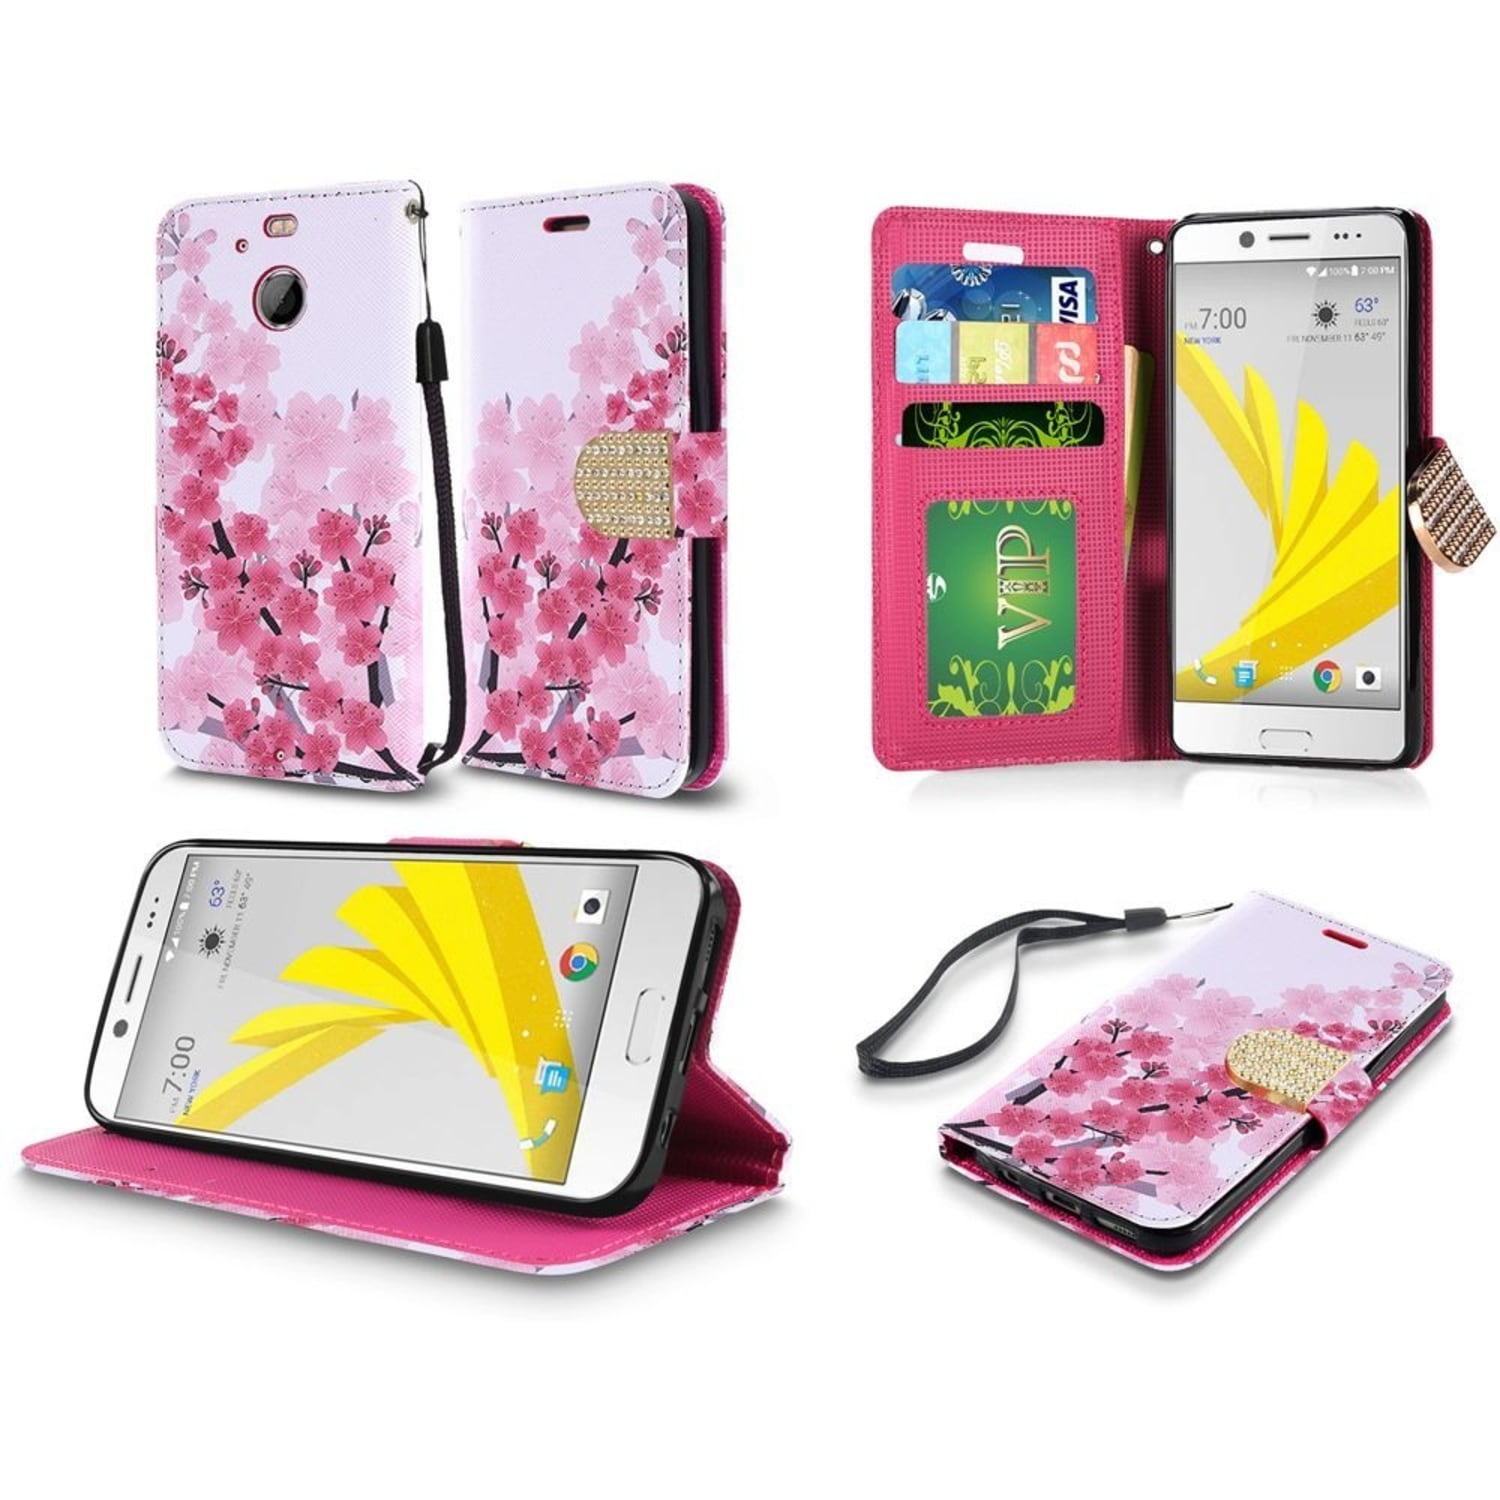 Insten Pink Cherry Blossom Leather Case Cover Lanyard wit...